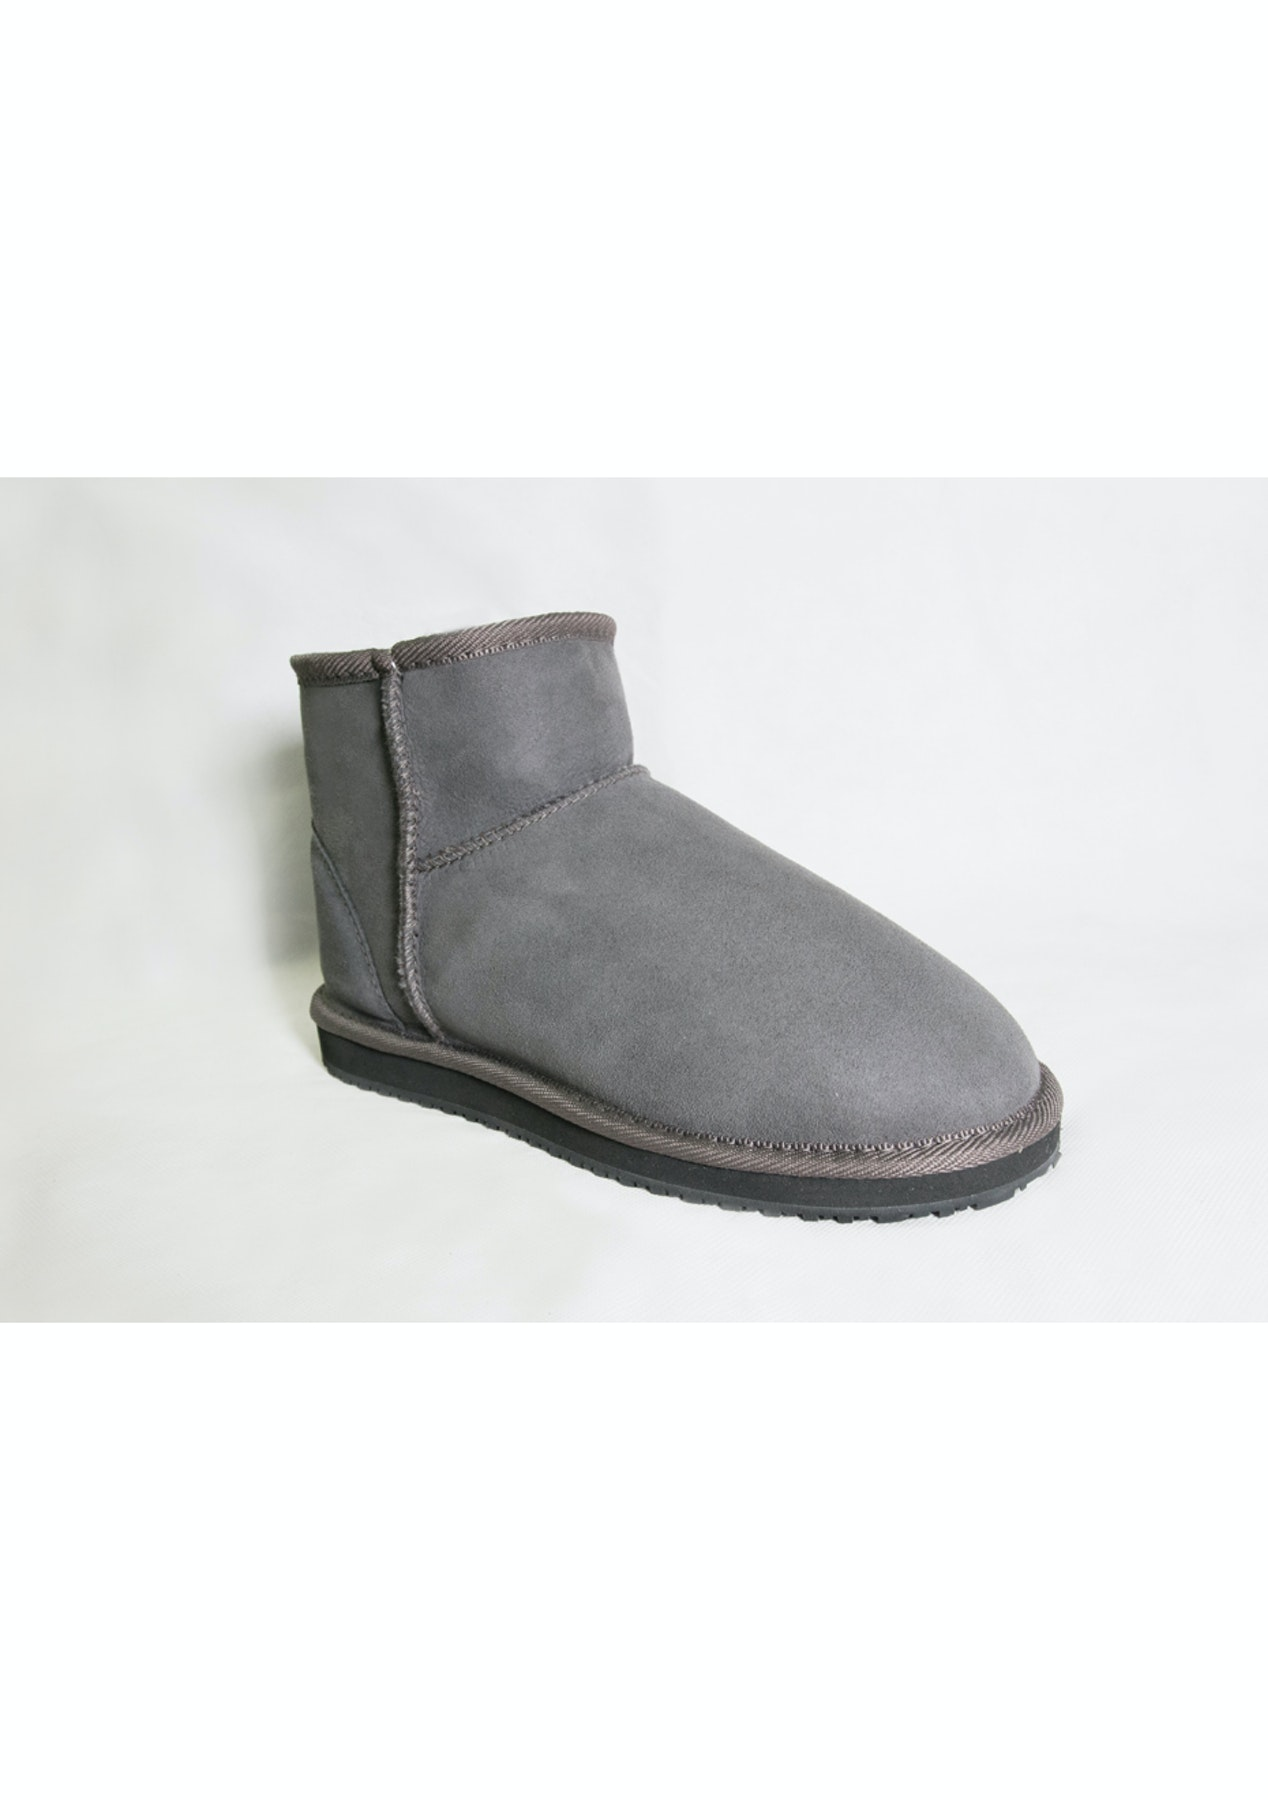 665a1016df2 The Sheepskin Factory - Napier Mini Boots - Grey